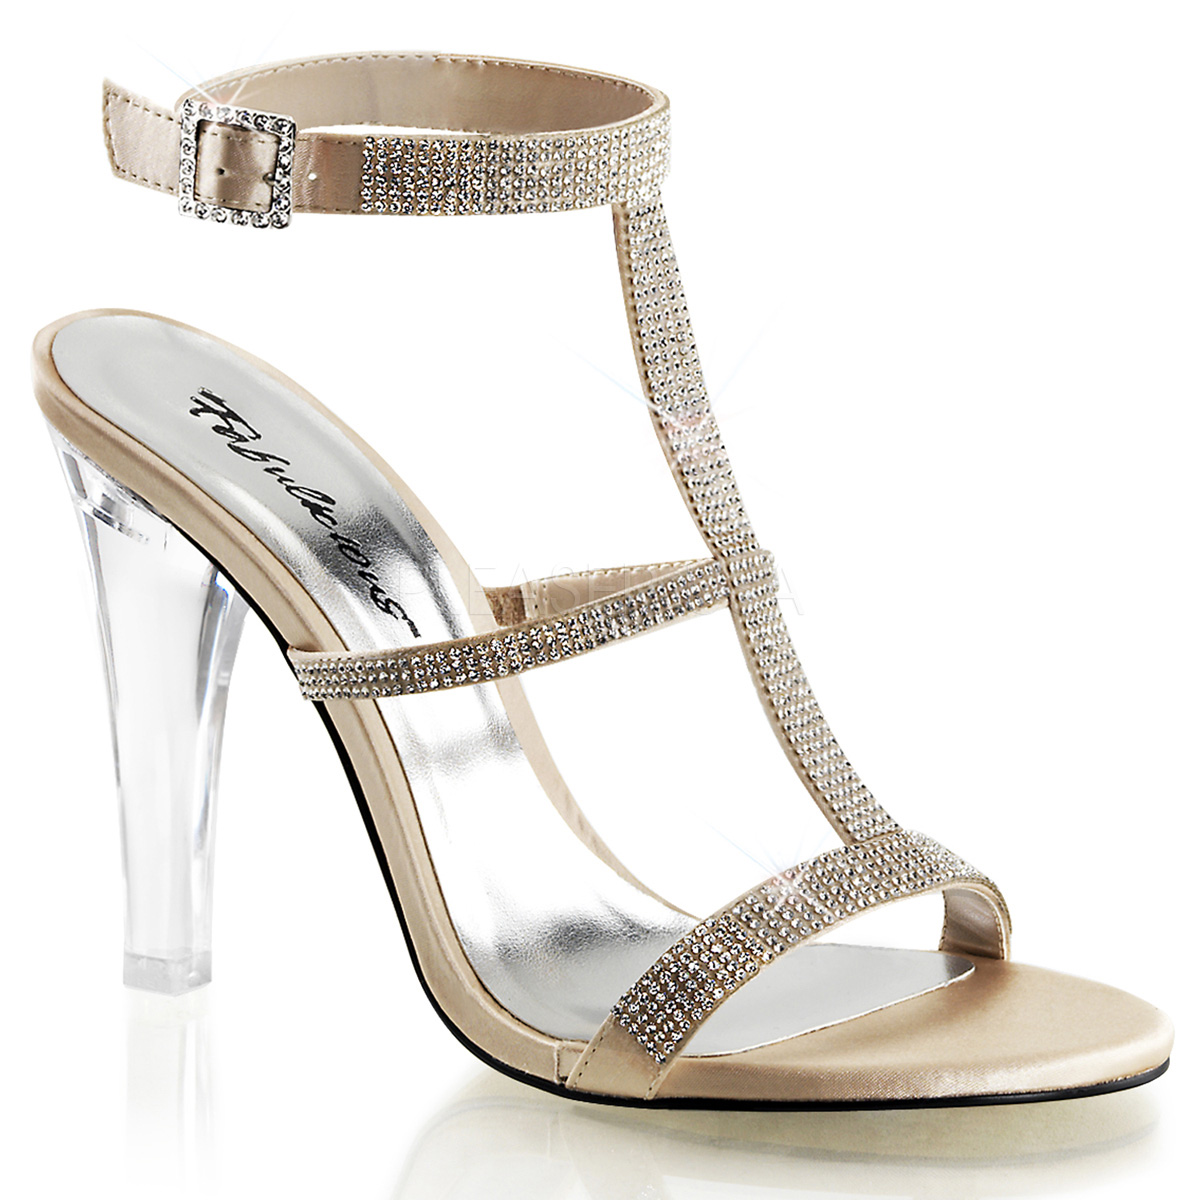 CLEARLY-418, 4 1/2 Inch Heel with Sling Back Sandal